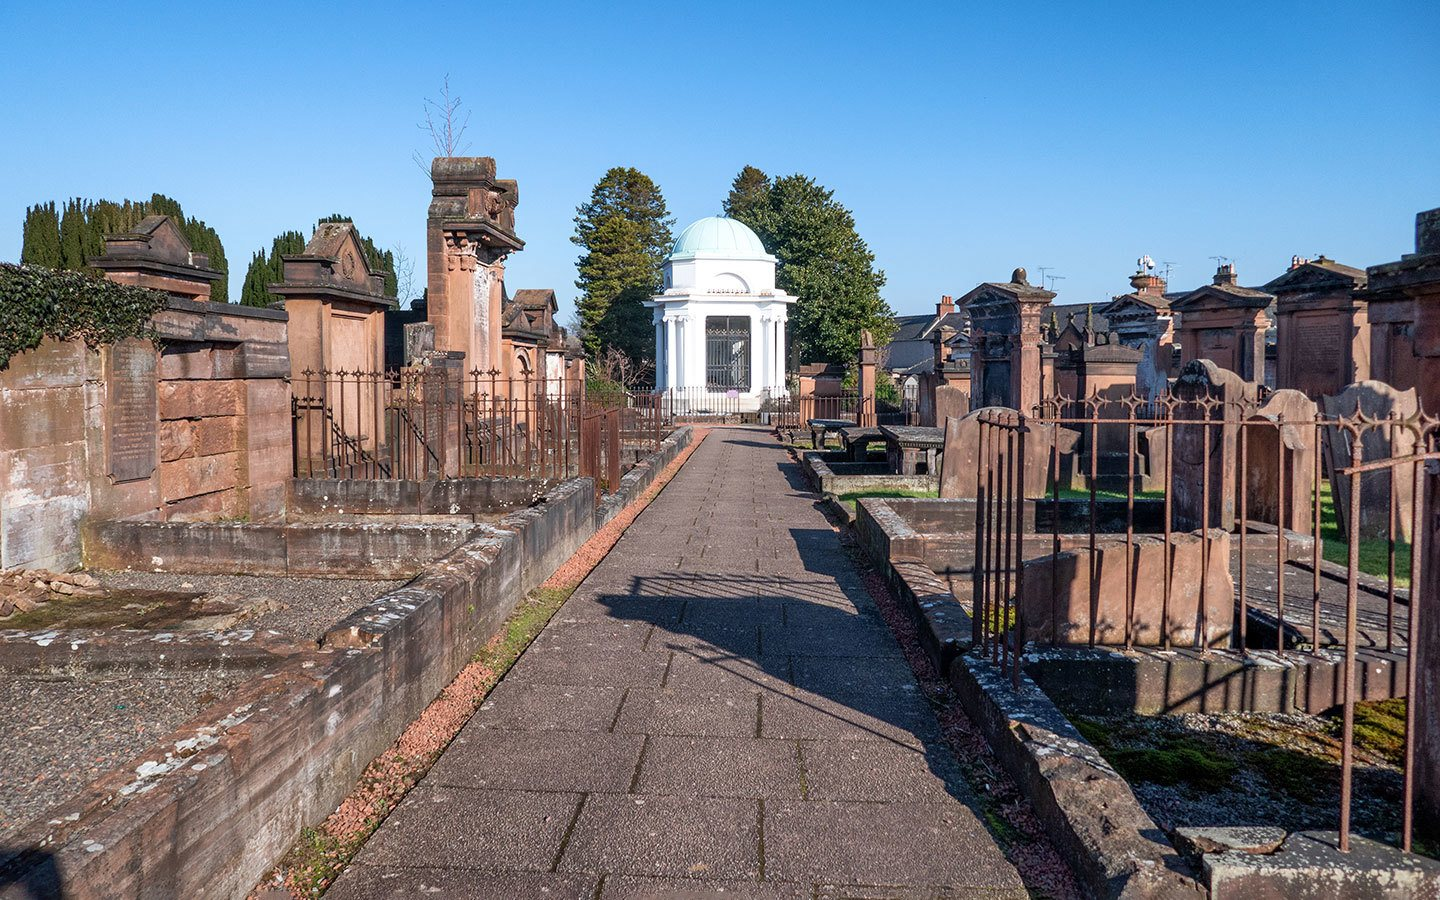 The graveyard at St Michael's and South Parish Church  in Dumfries